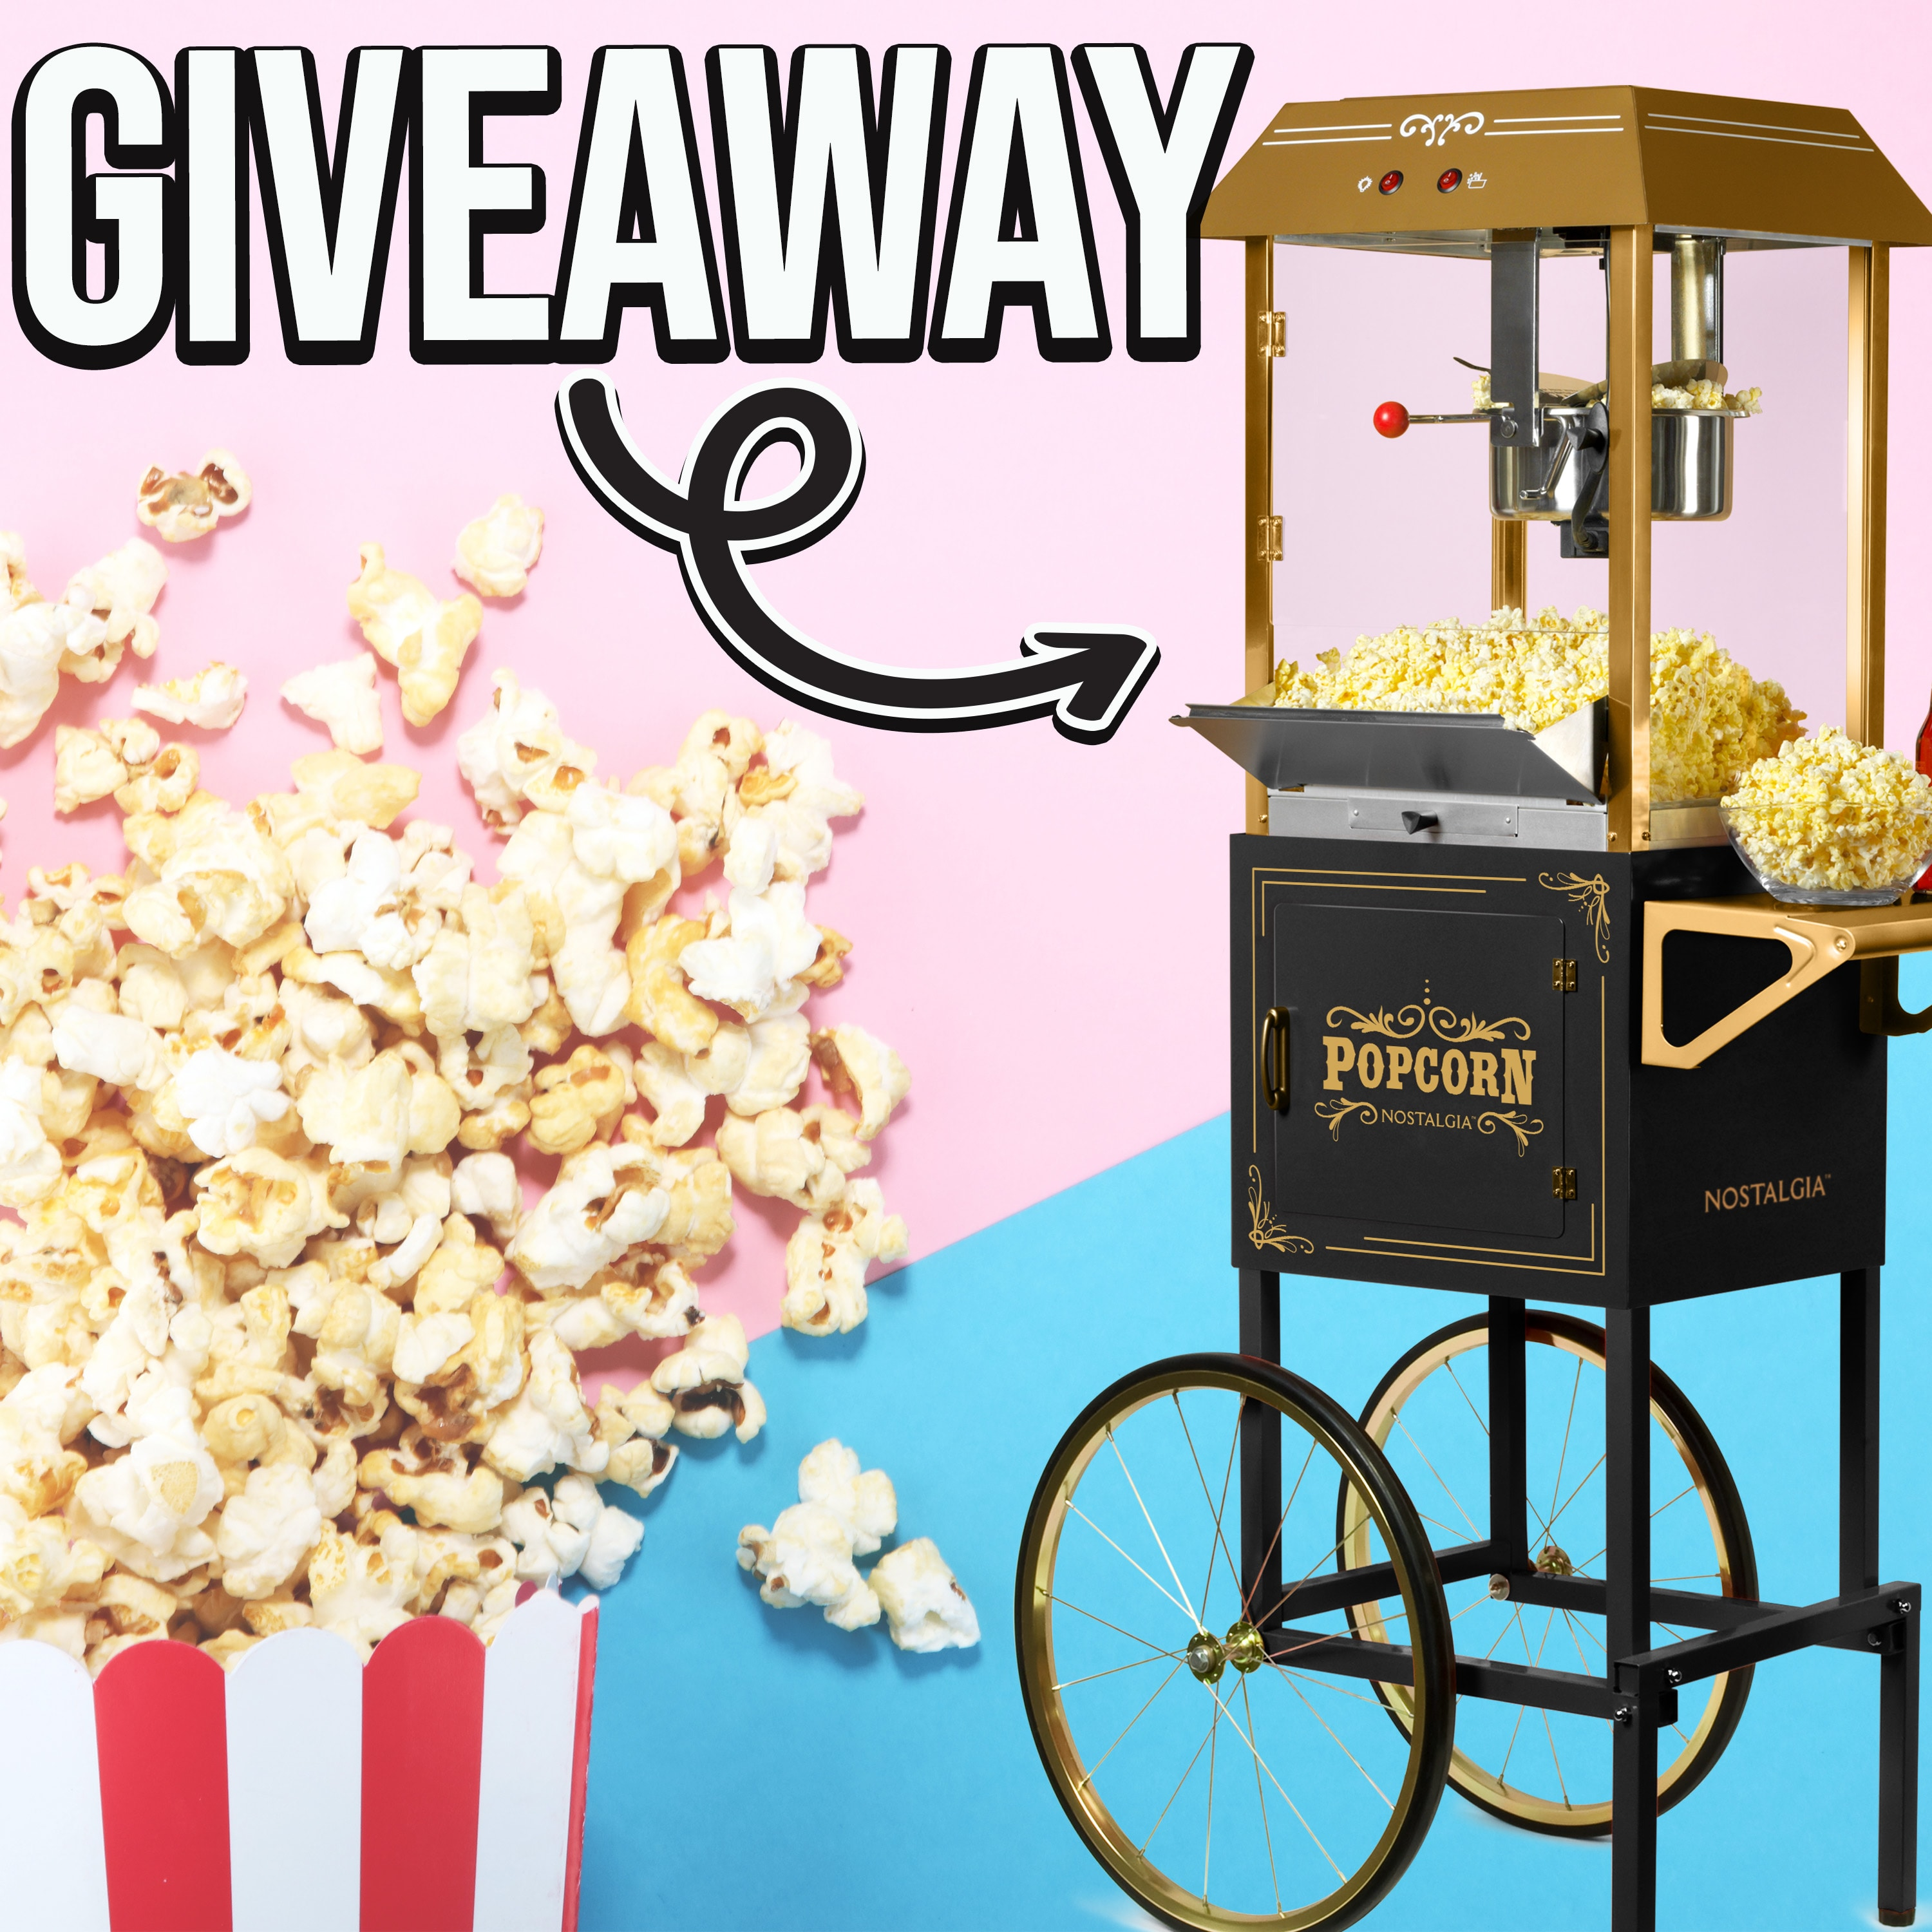 Nostalgia Popcorn Machine Giveaway (approximate retail value 299 USD) Giveaway Image